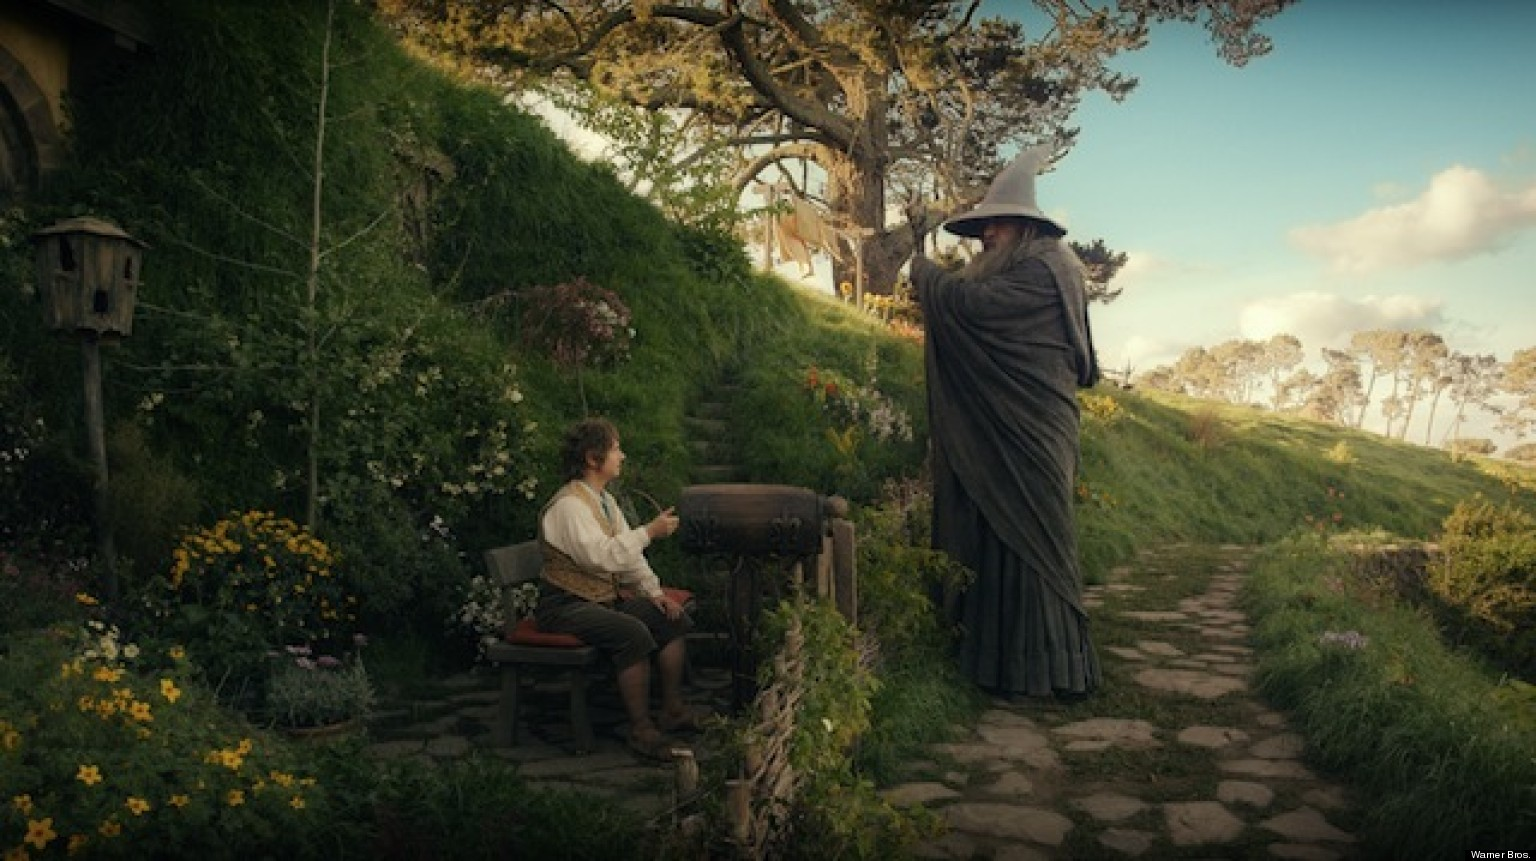 an analysis of bilbo baggins in the hobbit by j r r tolkien Bilbo baggins is a hobbit, one of a race of short tags: analysis bilbo baggins jrr tolkien smaug summary the hobbit thorin share this post.